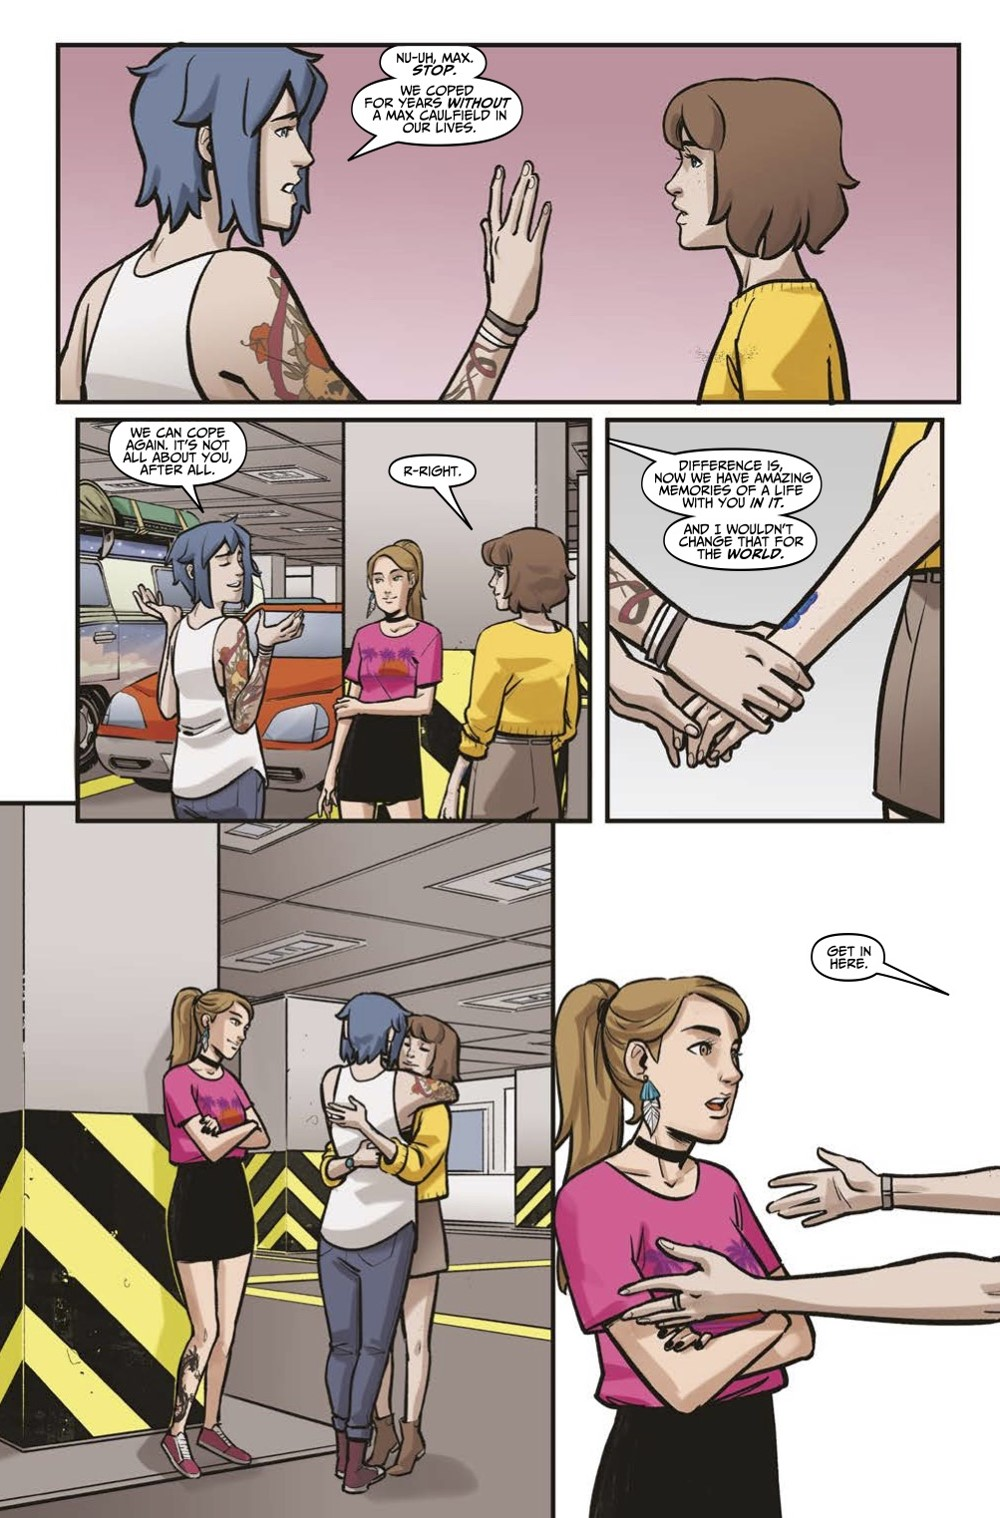 LIS-Settling-Dust-Page-2 ComicList Previews: LIFE IS STRANGE SETTLING DUST #1 (OF 4)